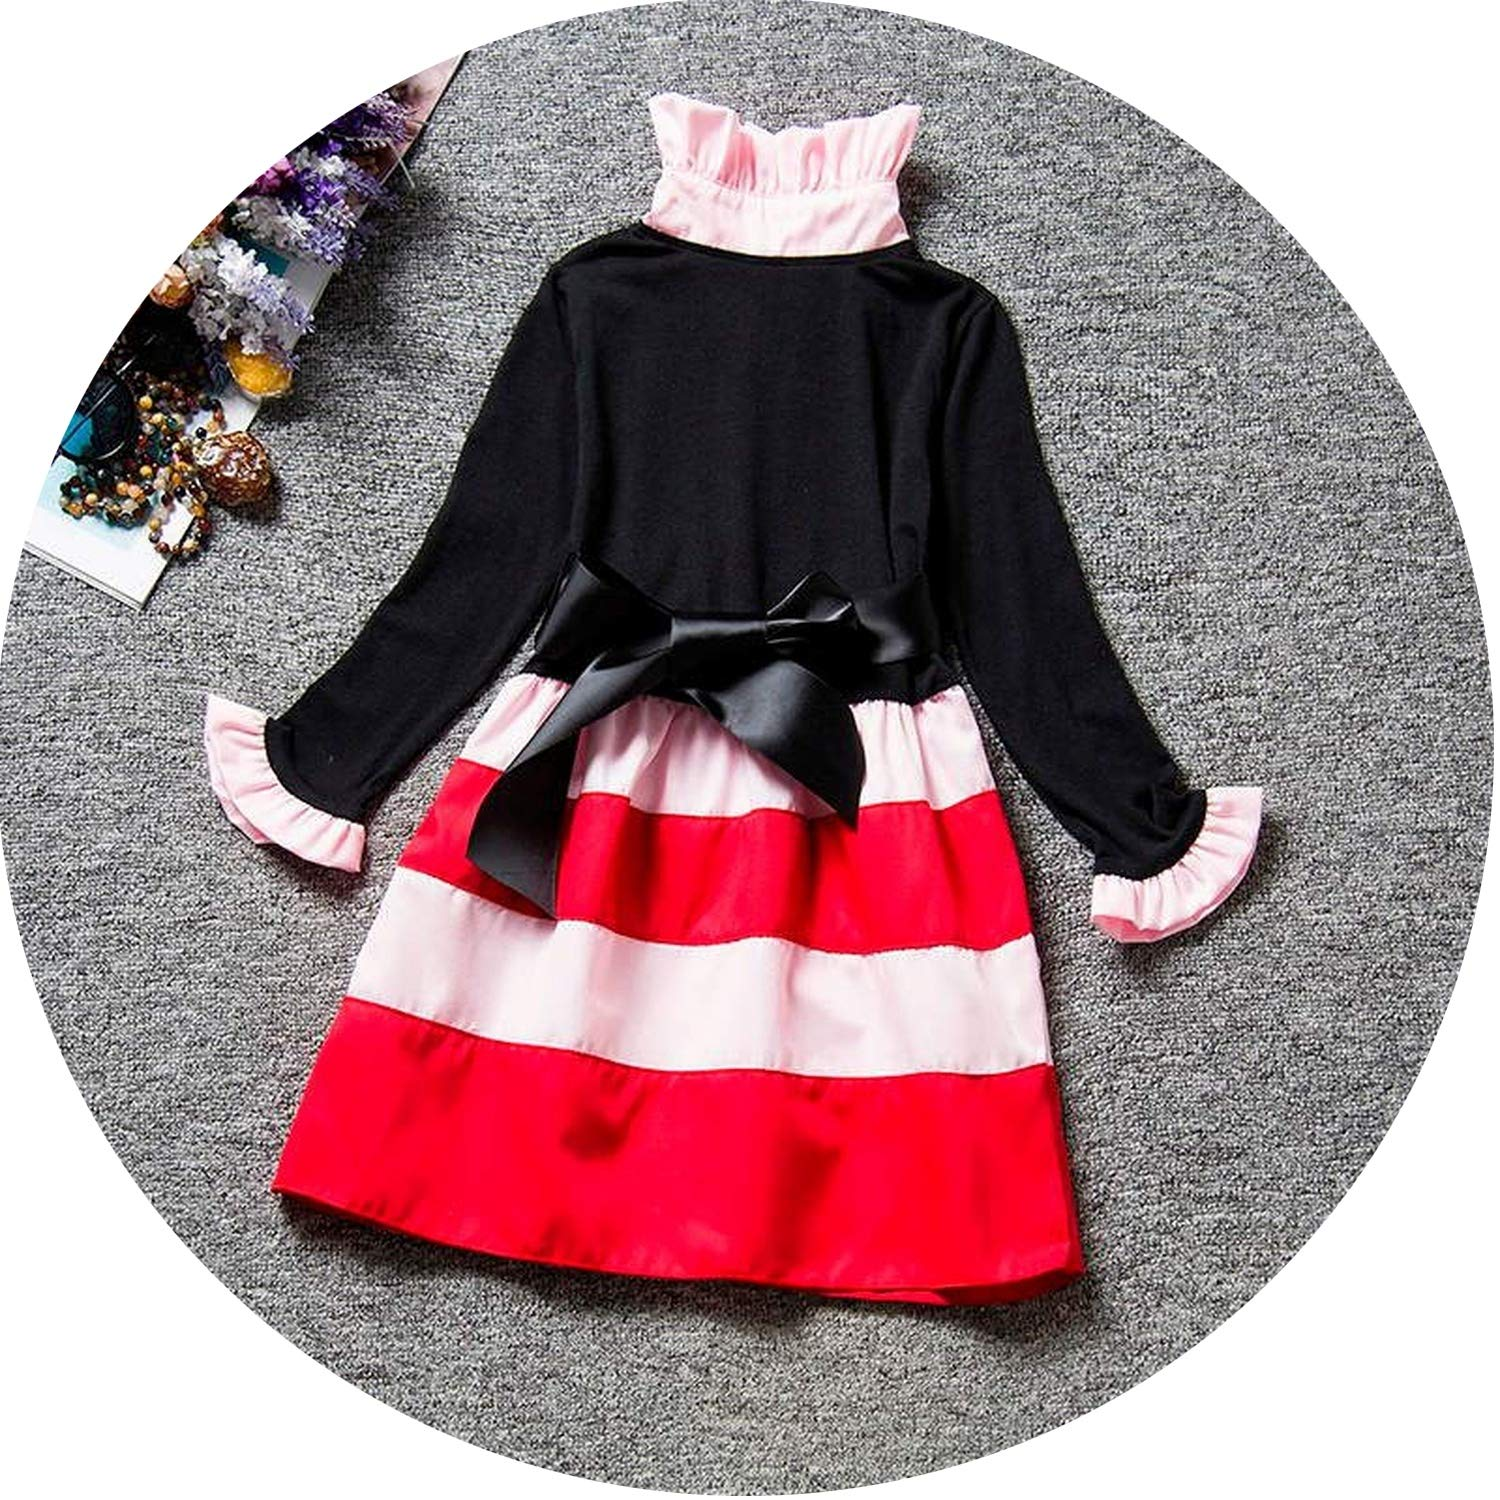 64c35262b Amazon.com: Winter Baby Dress for Girl Long Sleeve Princess Girls Dresses  Polka Dot Little Baby Birthday Party Dress Casual Kids Clothes,As Photo3,4:  ...